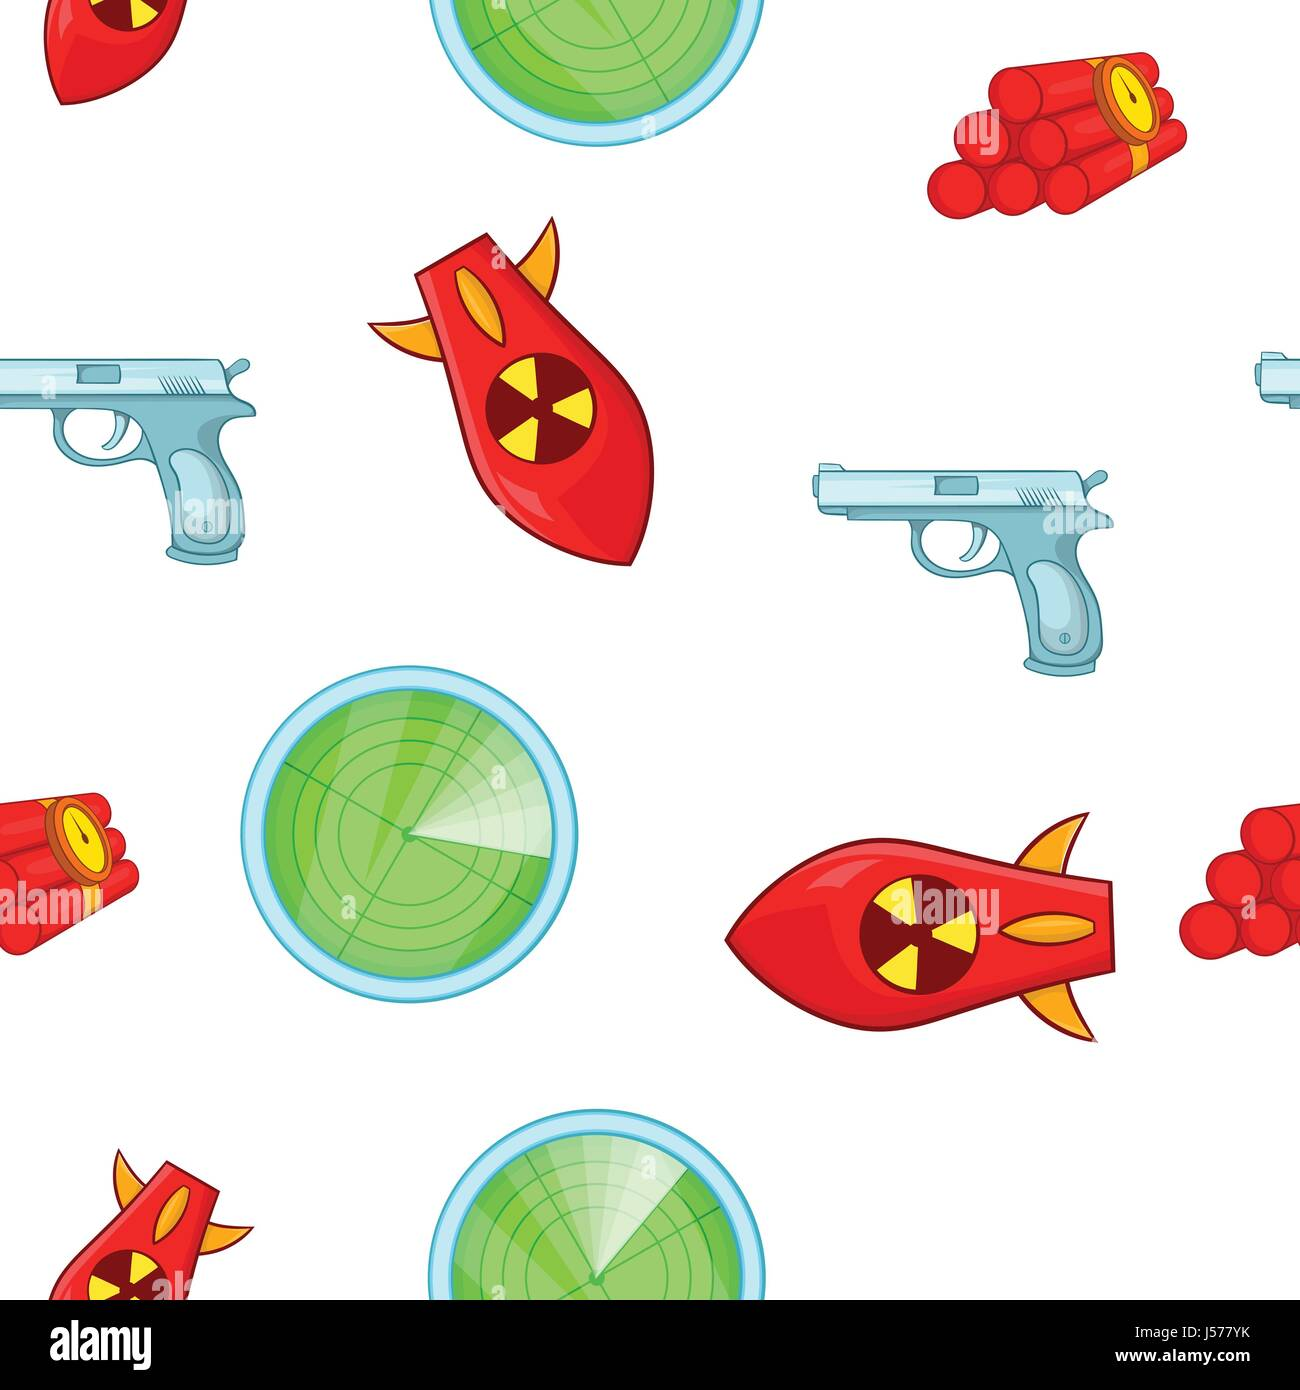 Weaponry pattern, cartoon style - Stock Image